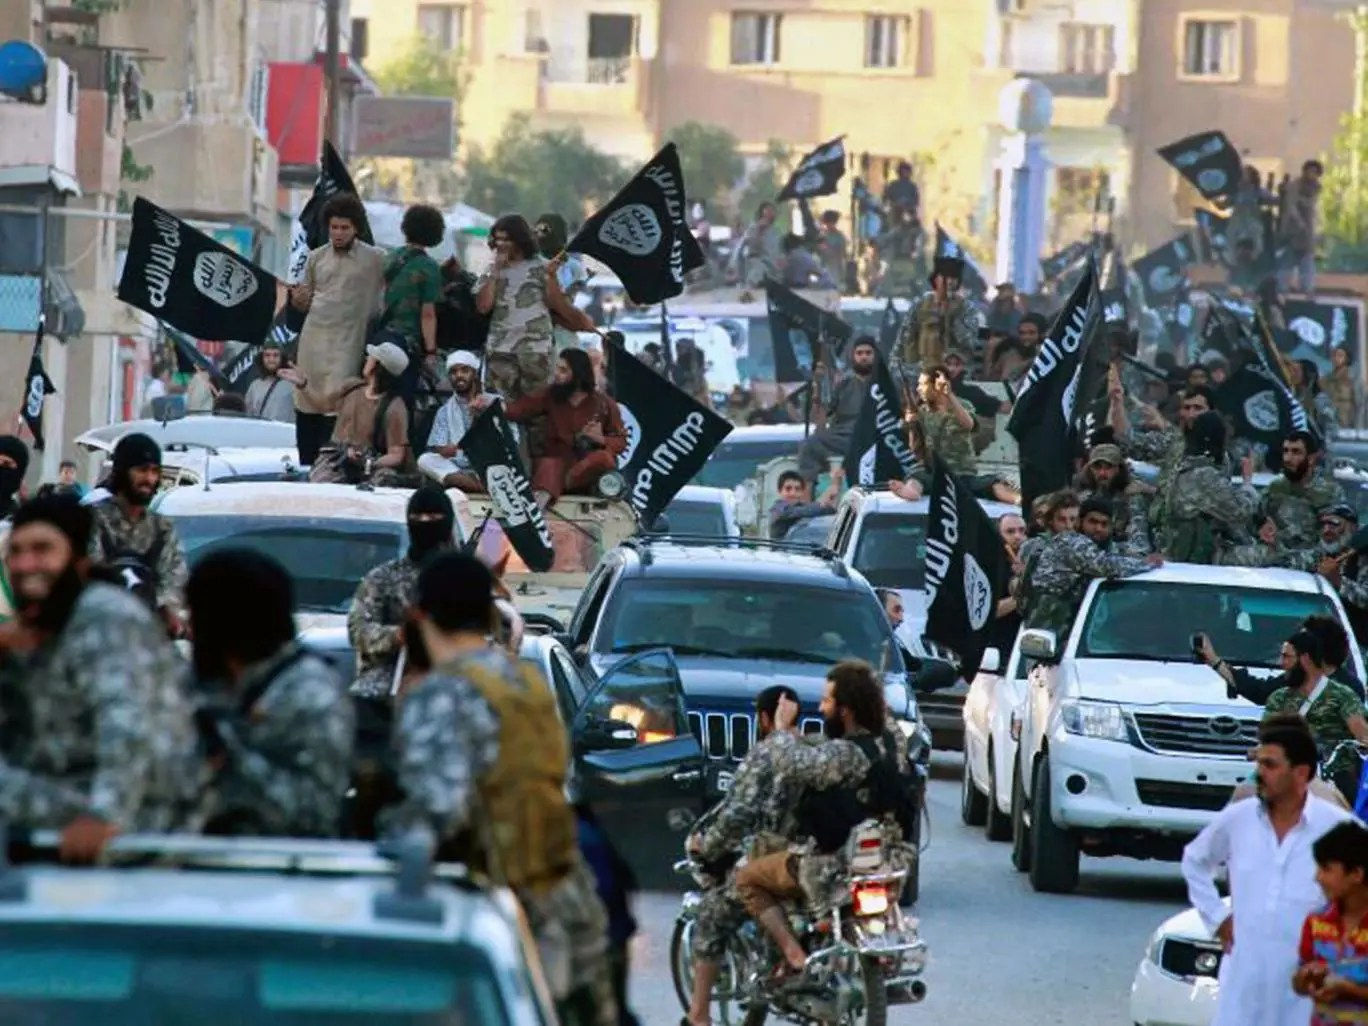 It is about 18 months since Isis took control of Raqqa, imposing its strict rules on citizens. Now the group Raqqa is Being Silently Slaughtered is fighting back against its repressive ideology